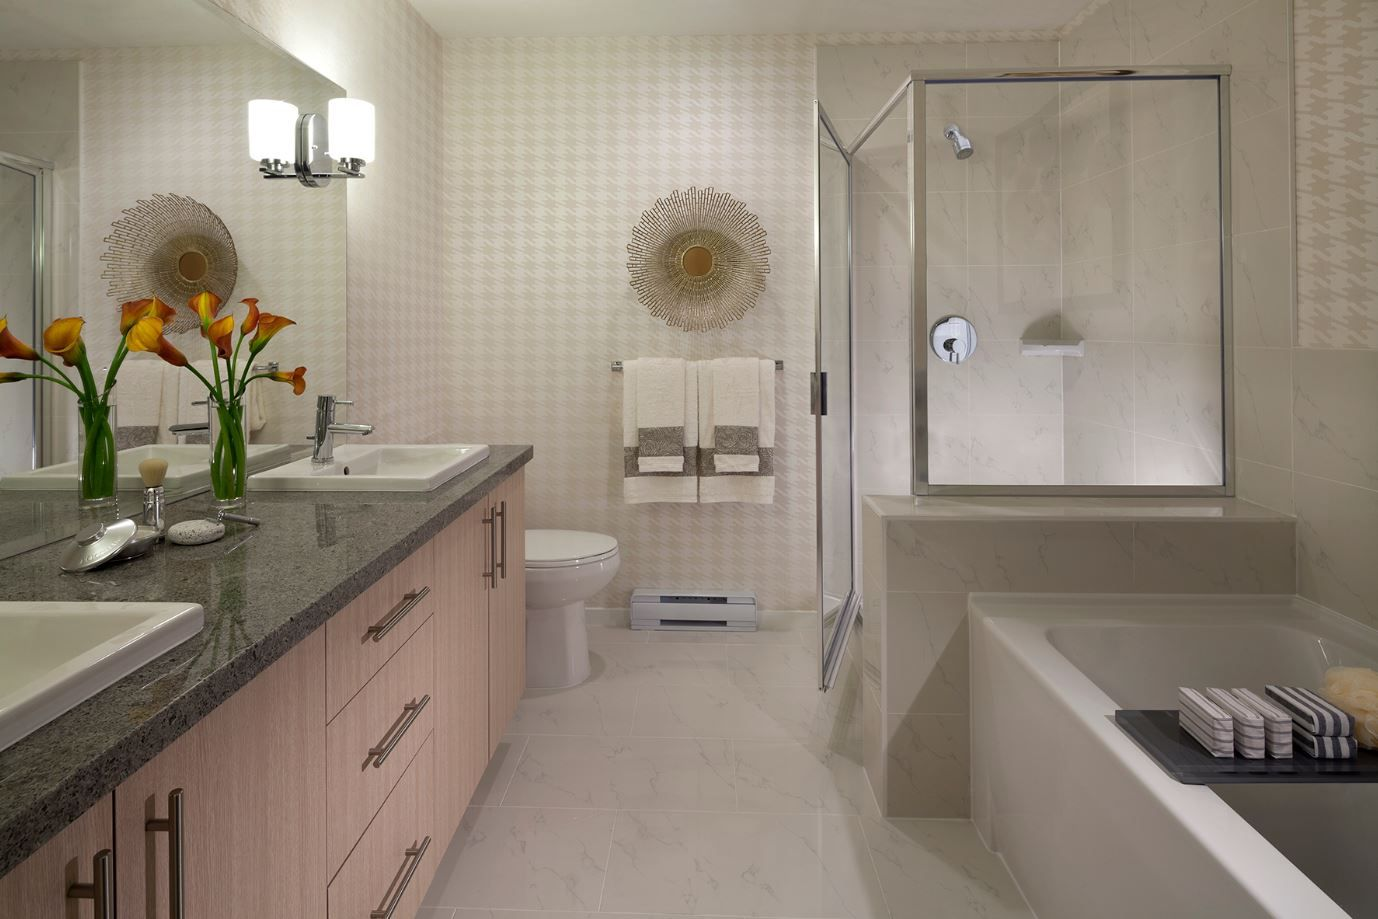 Ensuite Bathroom This 5 Piece Ensuite Is Breathtaking And Fully